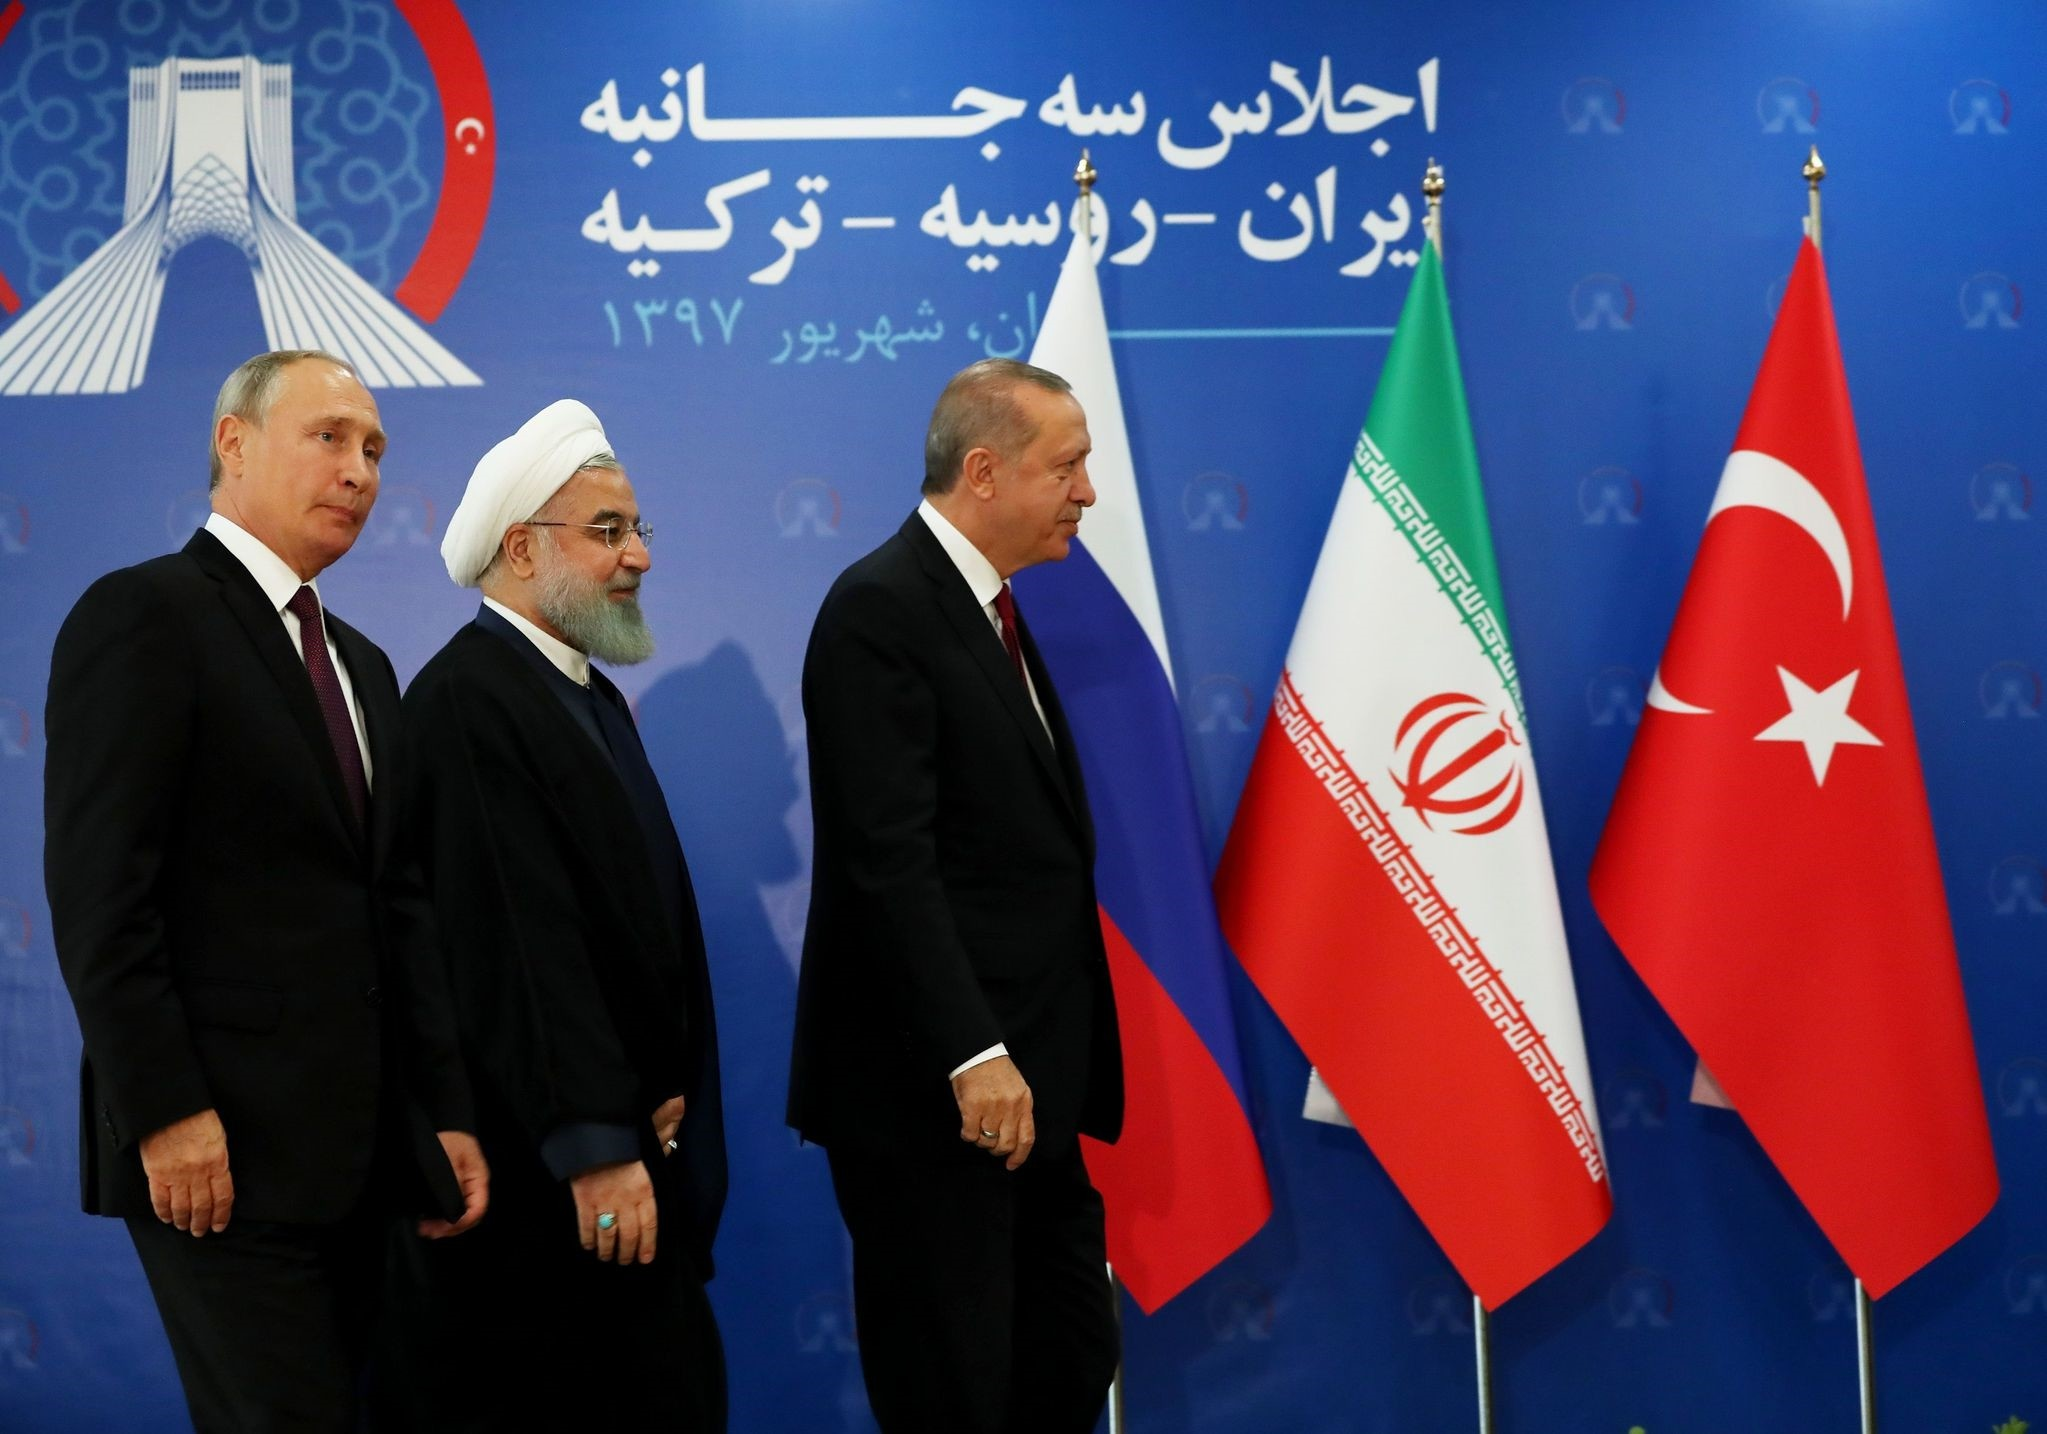 President Recep Tayyip Erdou011fan (R), Iranian President Hassan Rouhani (C) and Russian President Vladimir Putin (L) prepare to leave the stage during the trilateral summit on the Idlib crisis, Tehran, Sept. 7.